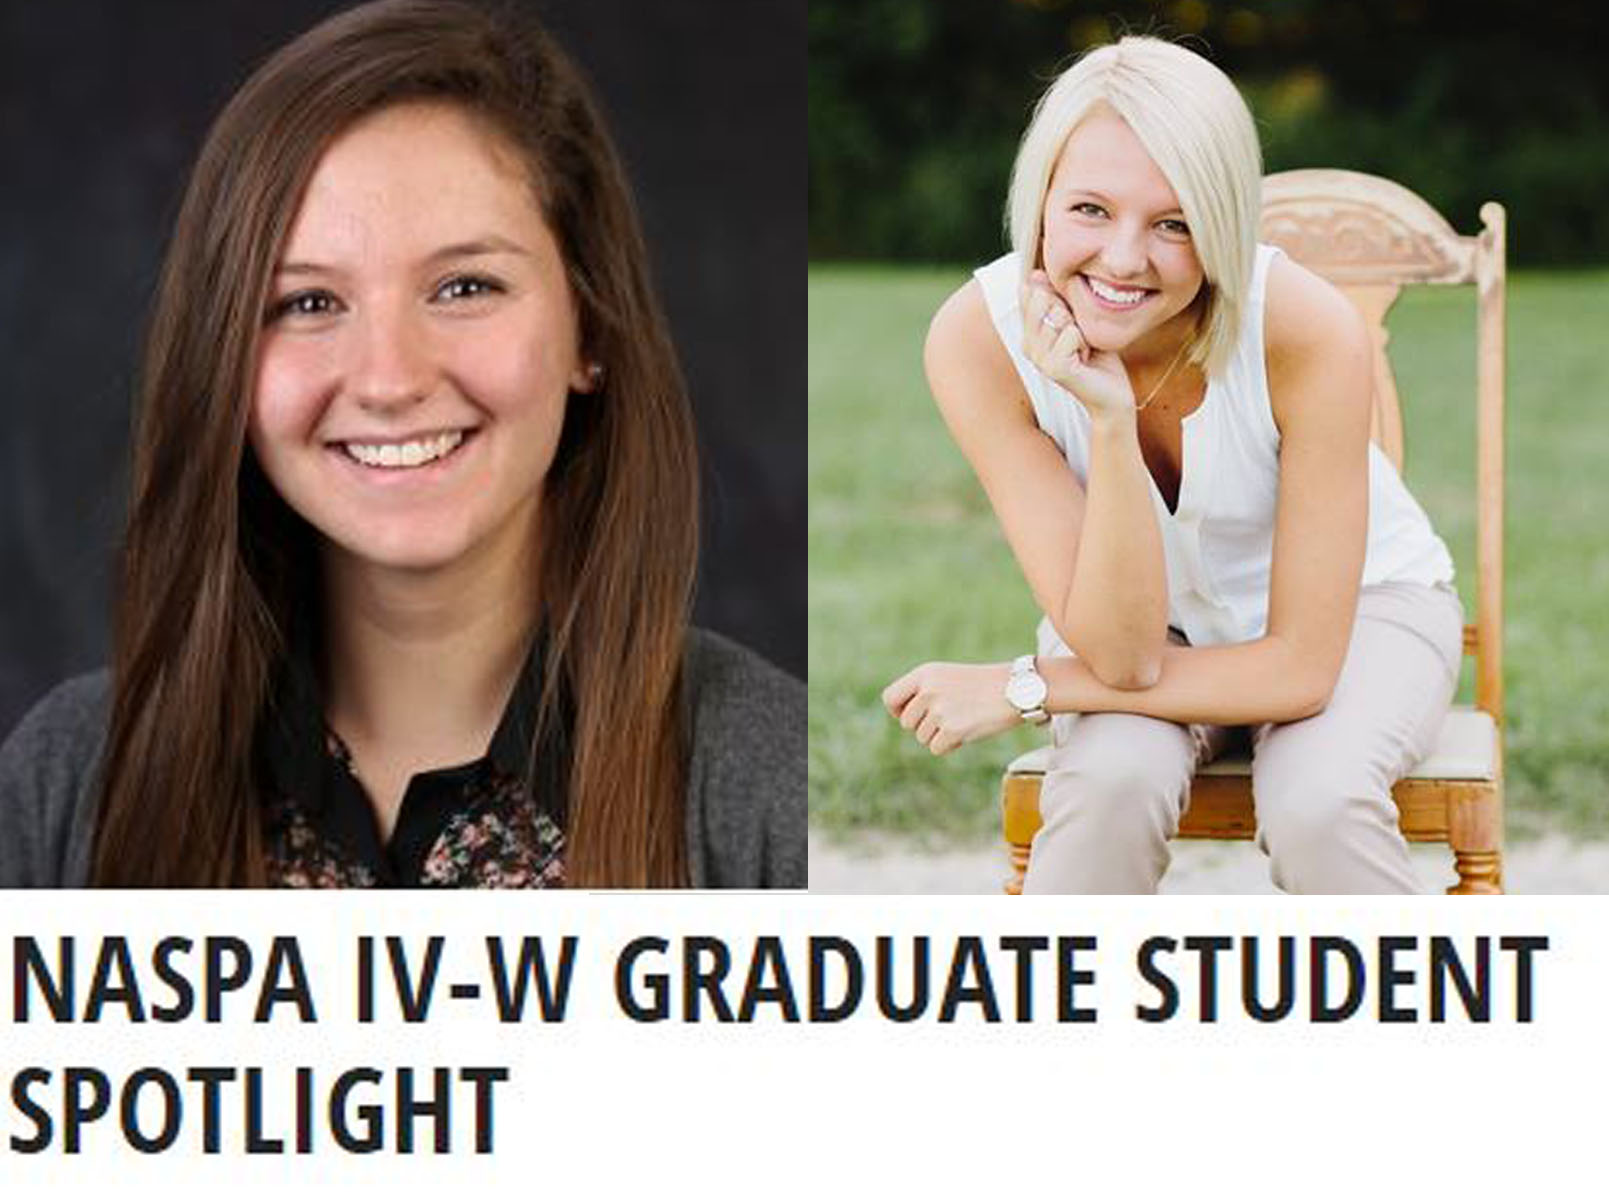 SAHE Students Highlighted in NASPA Newsletter